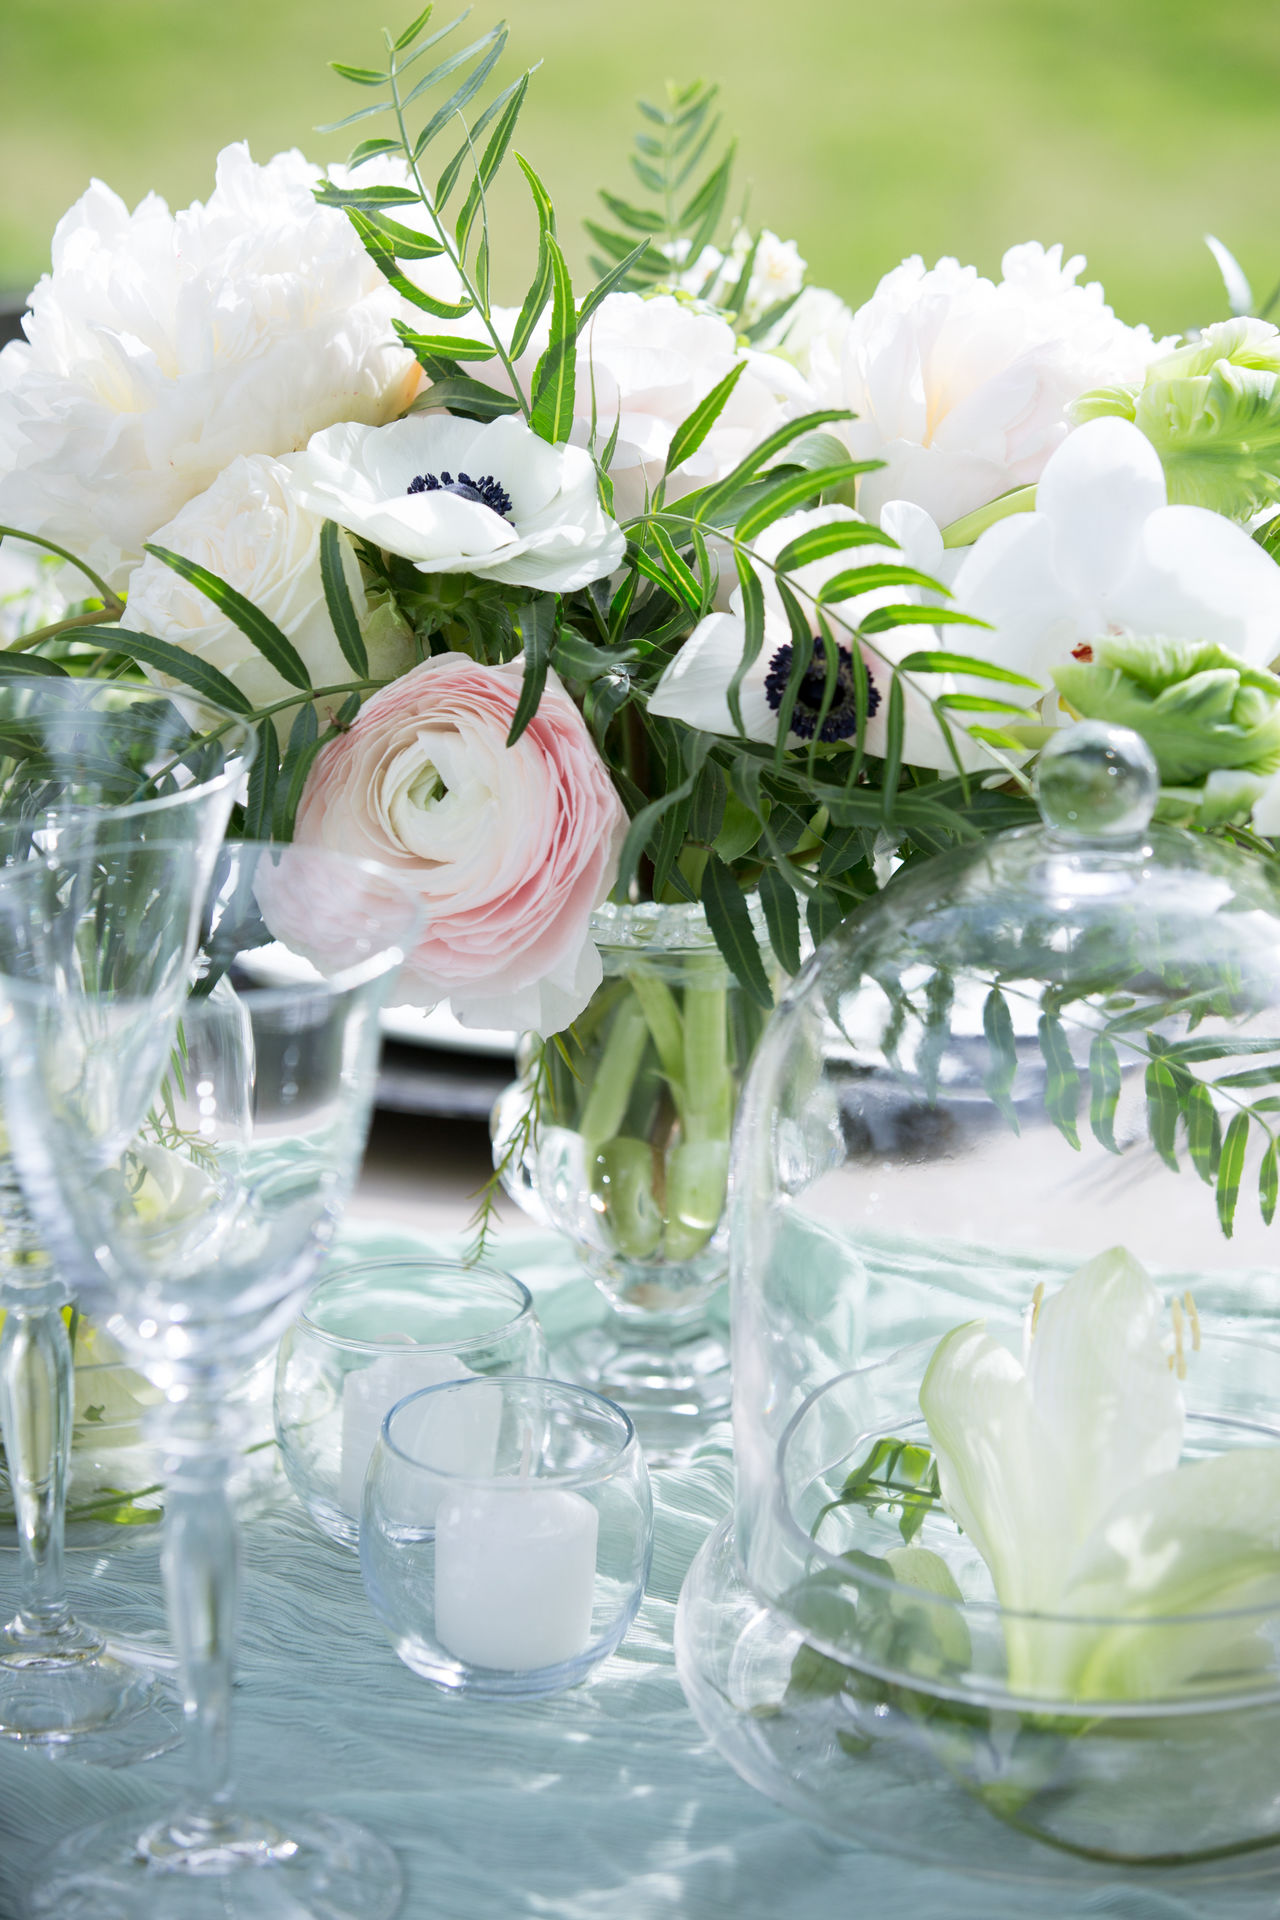 Close-up Day Floral Floral Containers Floral Pattern Florist Florits Flower Freshness Glass Glass Reflection Hands At Work Out Of Focus Background Peonies Peony  Peony Flower Pink Roses Shallow Shallow Depth Of Field Shallow Focus Table Table Setting Tablecloth Tablesetting